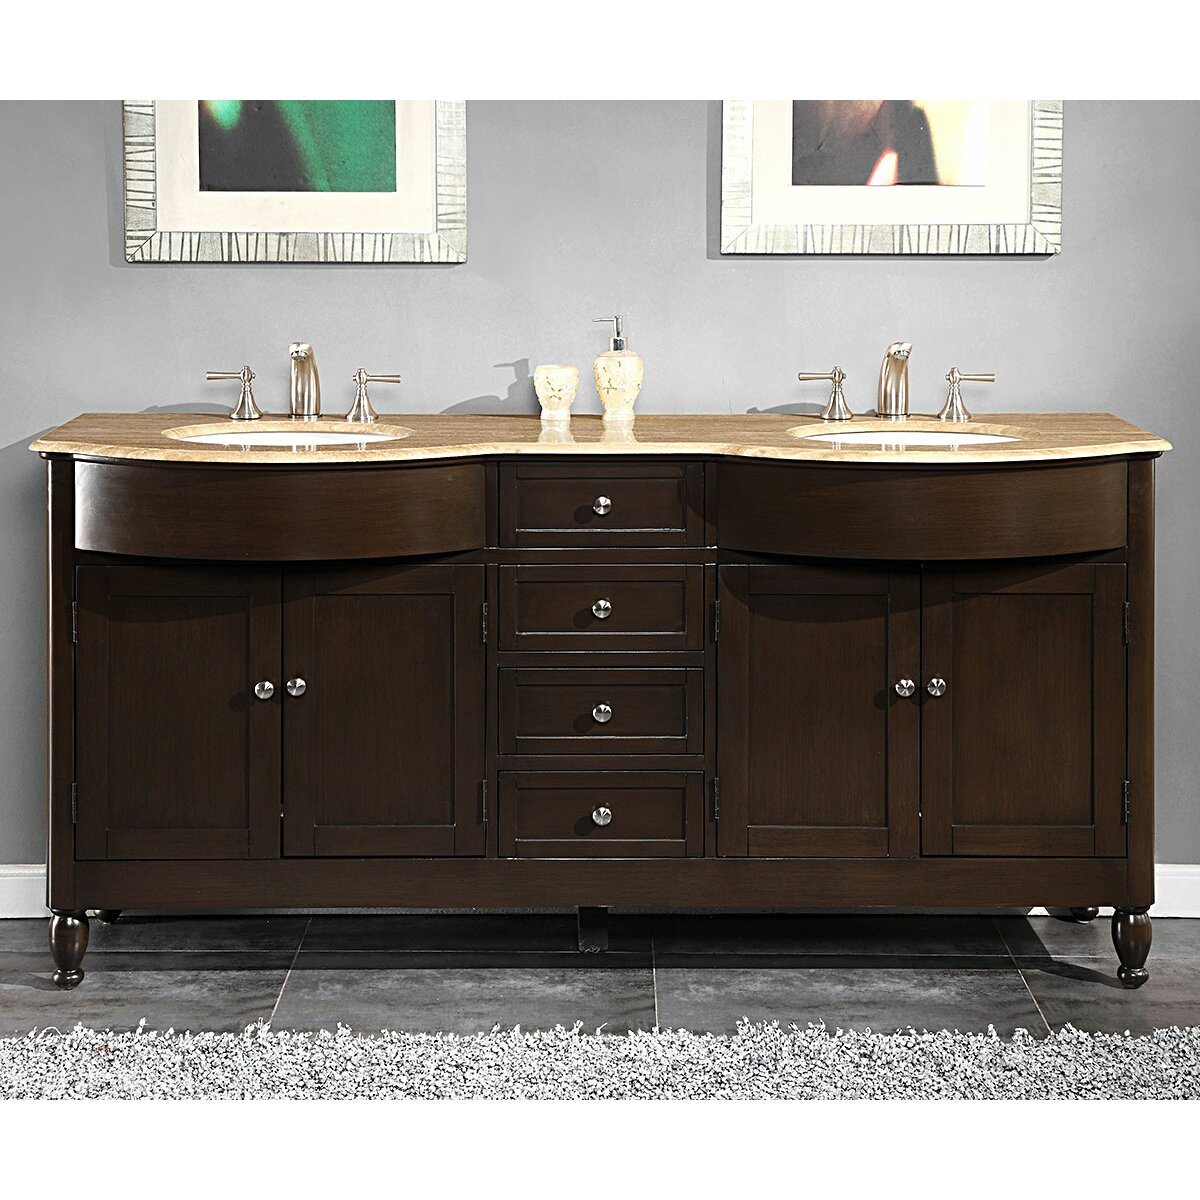 Silkroad Exclusive Kelston 72 Double Bathroom Vanity Set Reviews Wayfair